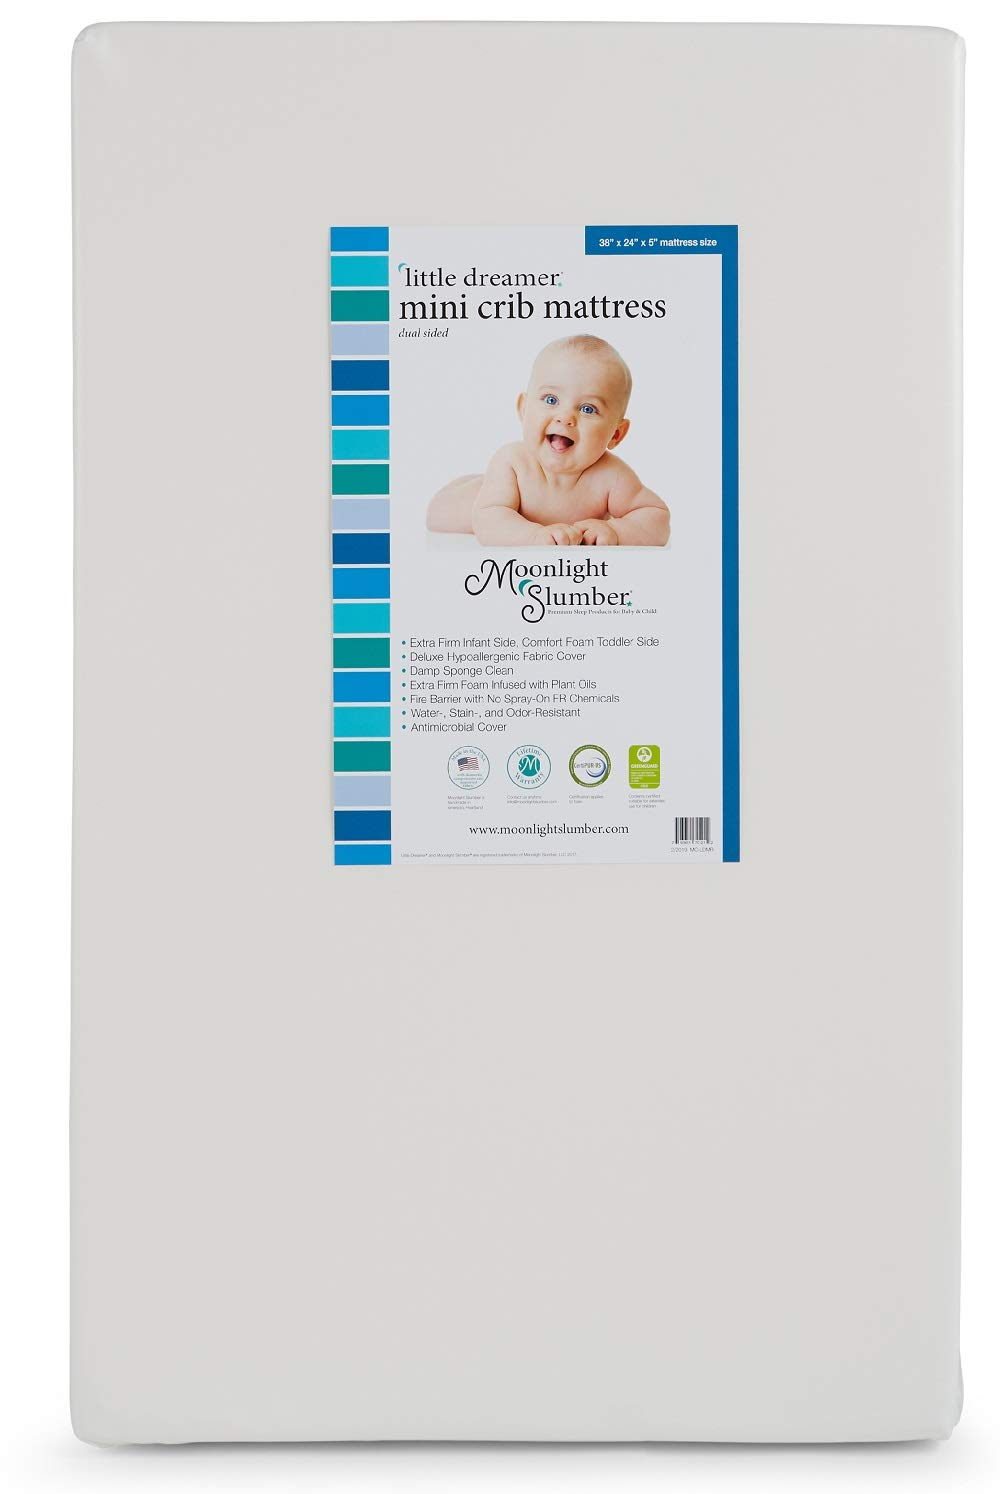 Moonlight Slumber Mini Little Dreamer Crib Mattress. Dual Sleep Surface - Water Resistant and Hypoallergenic Mini Mattress with Extra Firm Infant and Plush Toddler Sides (38x24x5 in.)